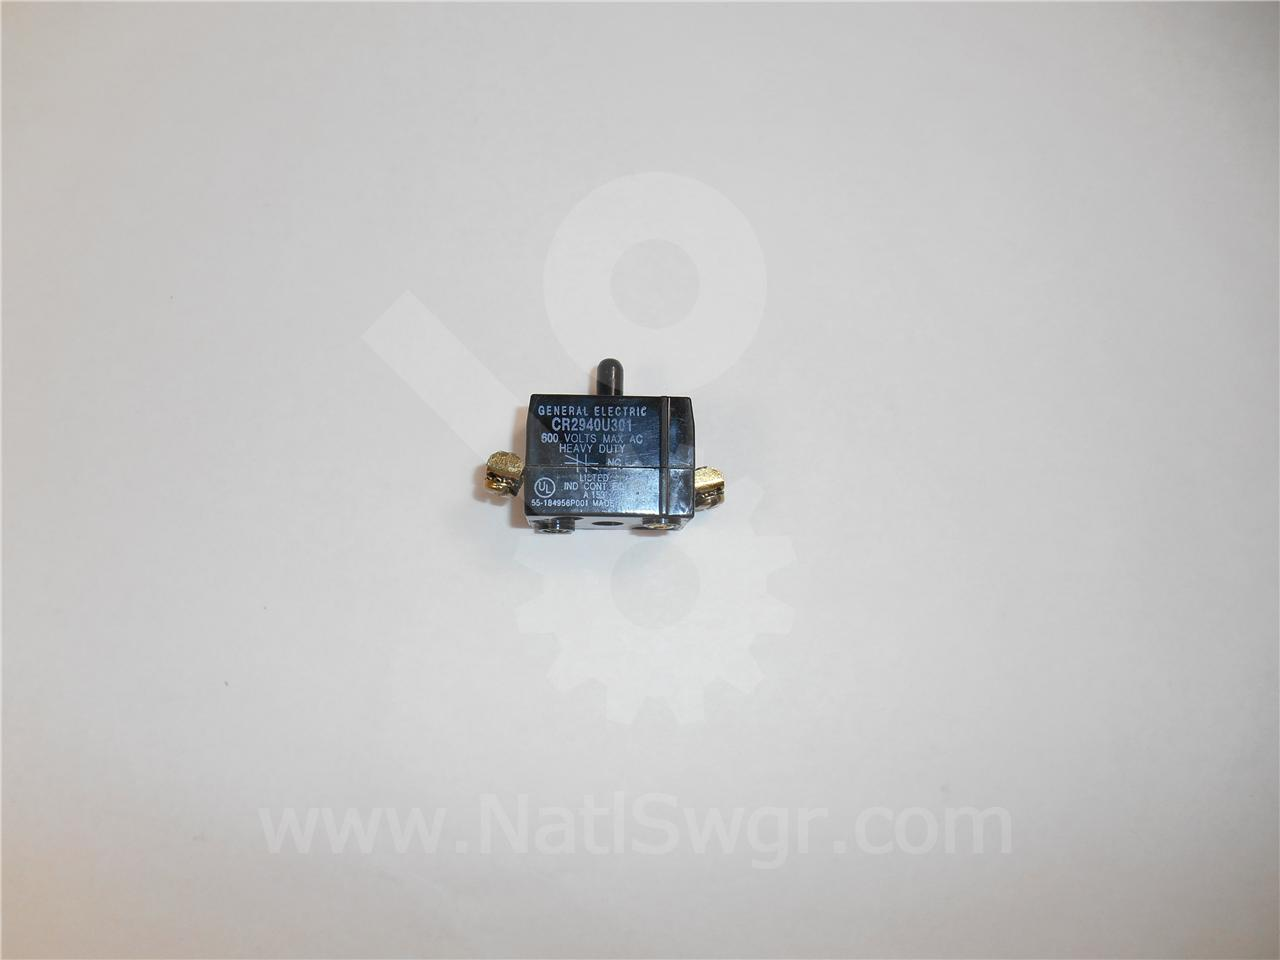 0456A0866P006 GE / General Electric CONTACT BLOCK SWITCH NC NEW FOR MAGNE-BLAST WITH ML-13 MECHANISM